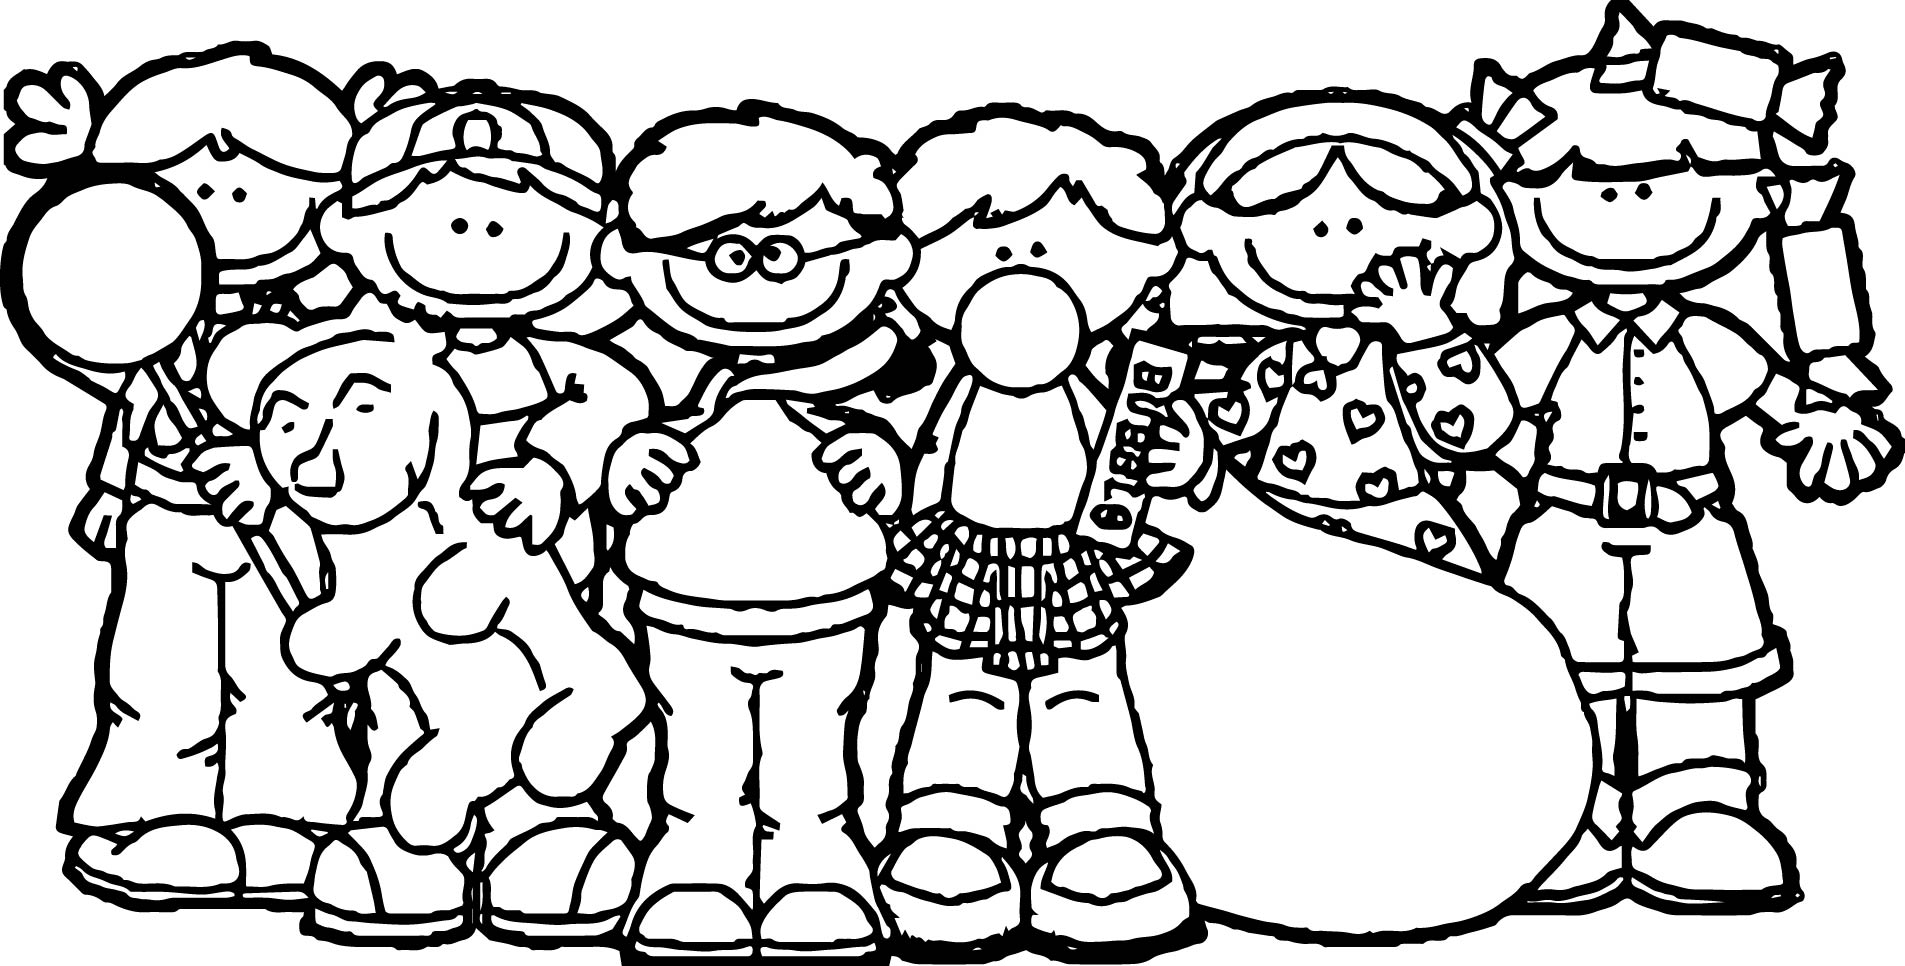 Kids 3rd Grade Coloring Page Wecoloringpage Coloring Pages Grade 3